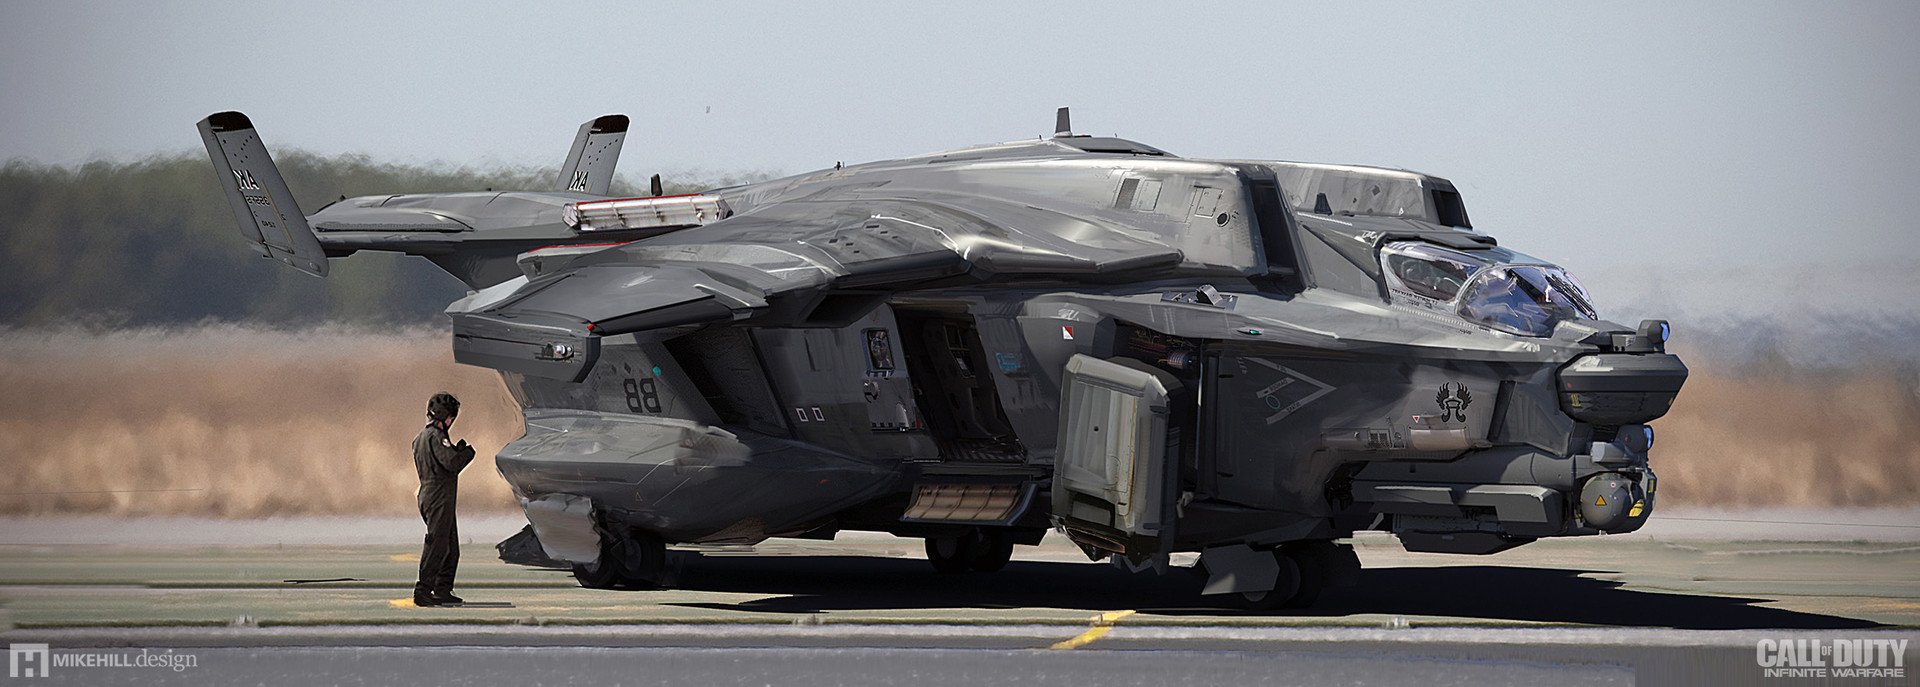 mike-hill-dropship-concept-copy